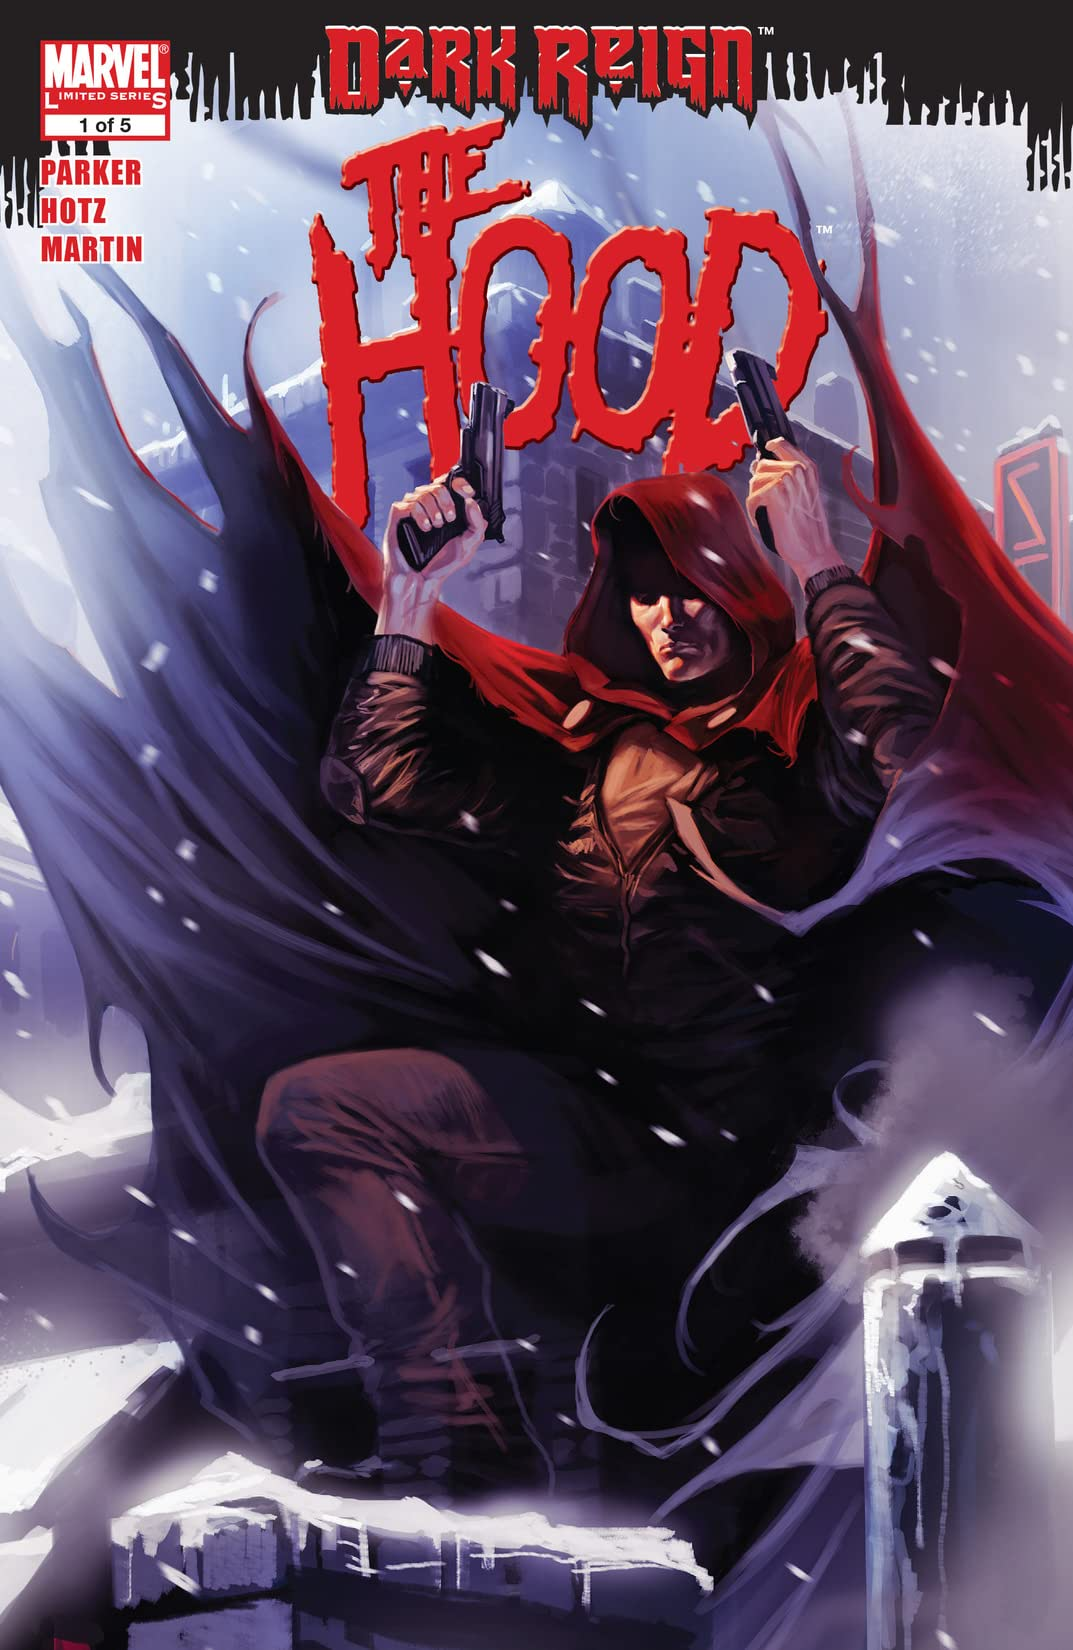 Dark Reign: The Hood (2009) #1 (of 5)